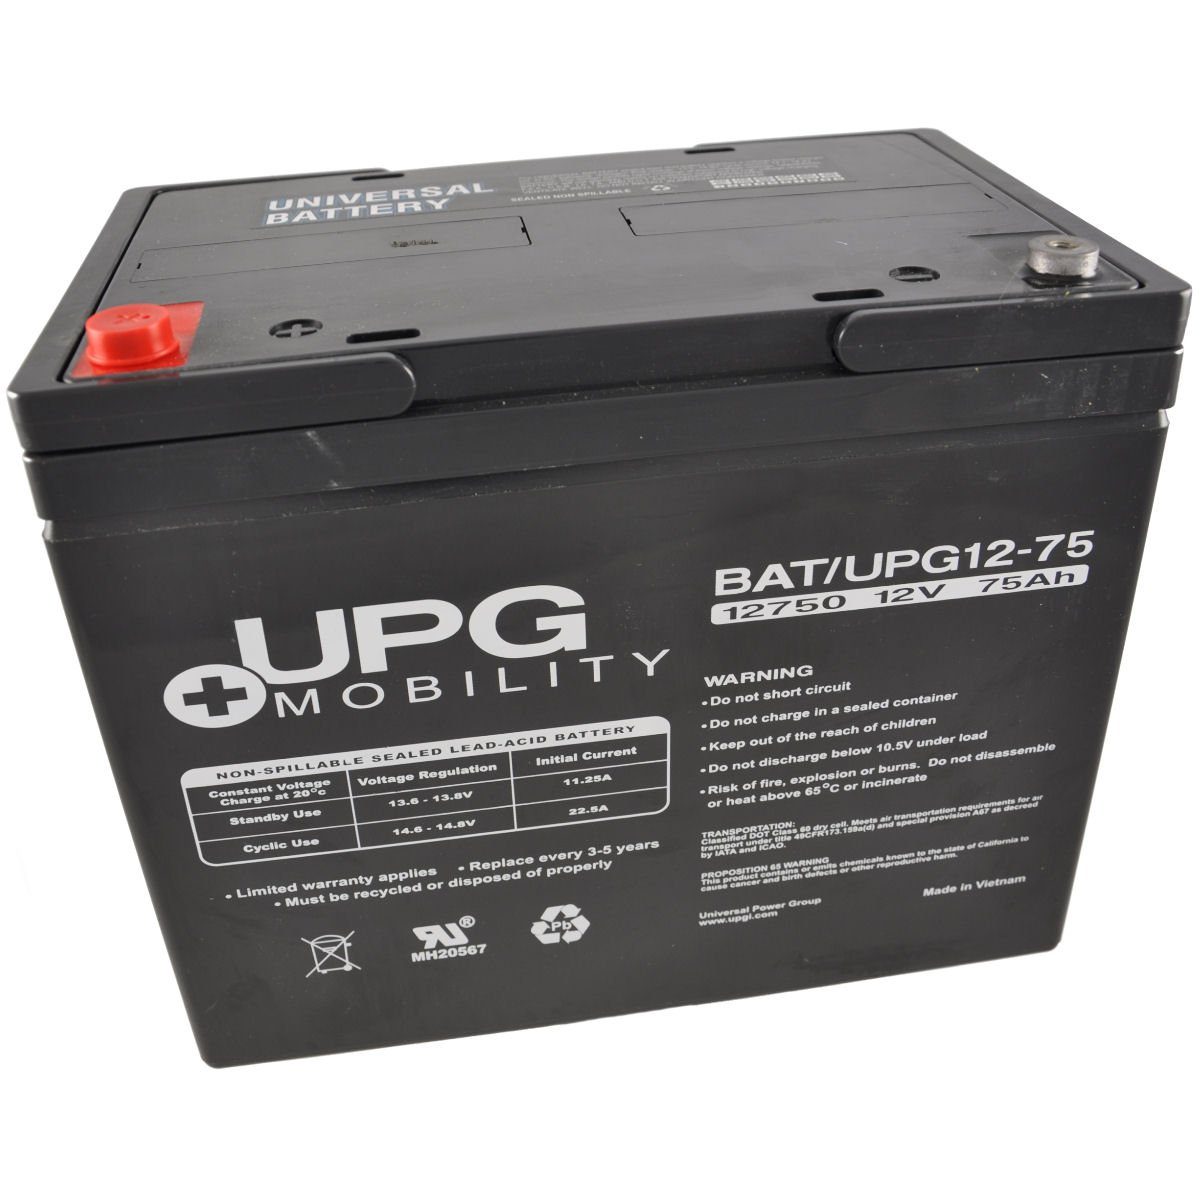 Universal Power Group Upg Ub12750 12v 75ah Sealed Lead Acid Battery The Circuit Can Be Used To Charge Batteries I4 Tt Electronics Tools Products Industrial Scientific